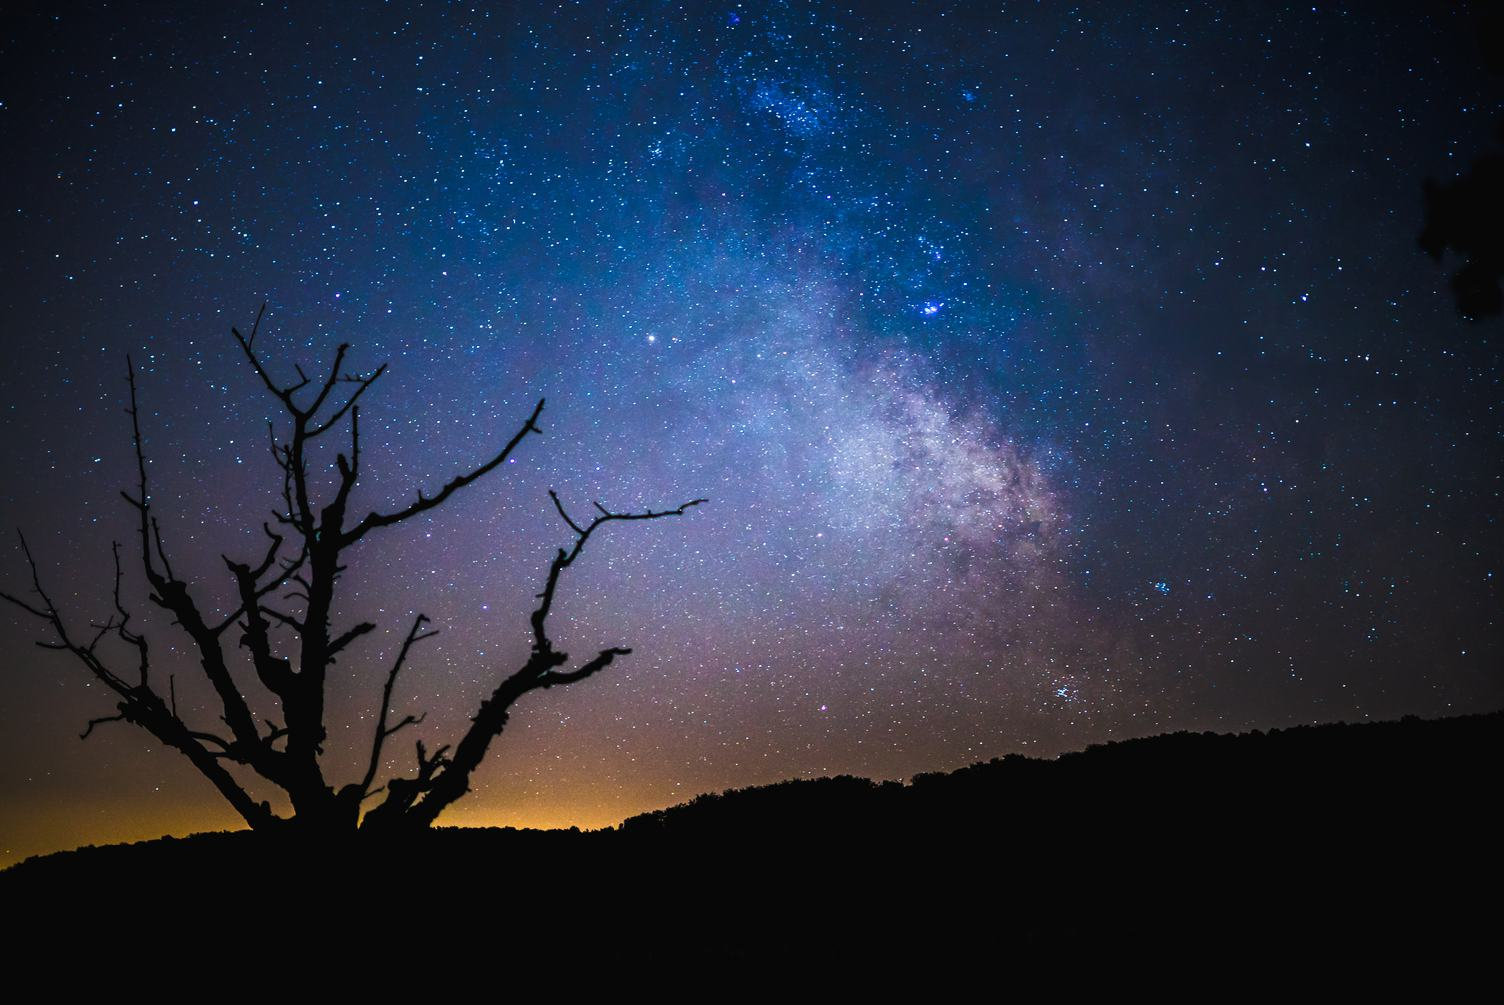 Sky at Night with Stars and Silhouette of a Tree